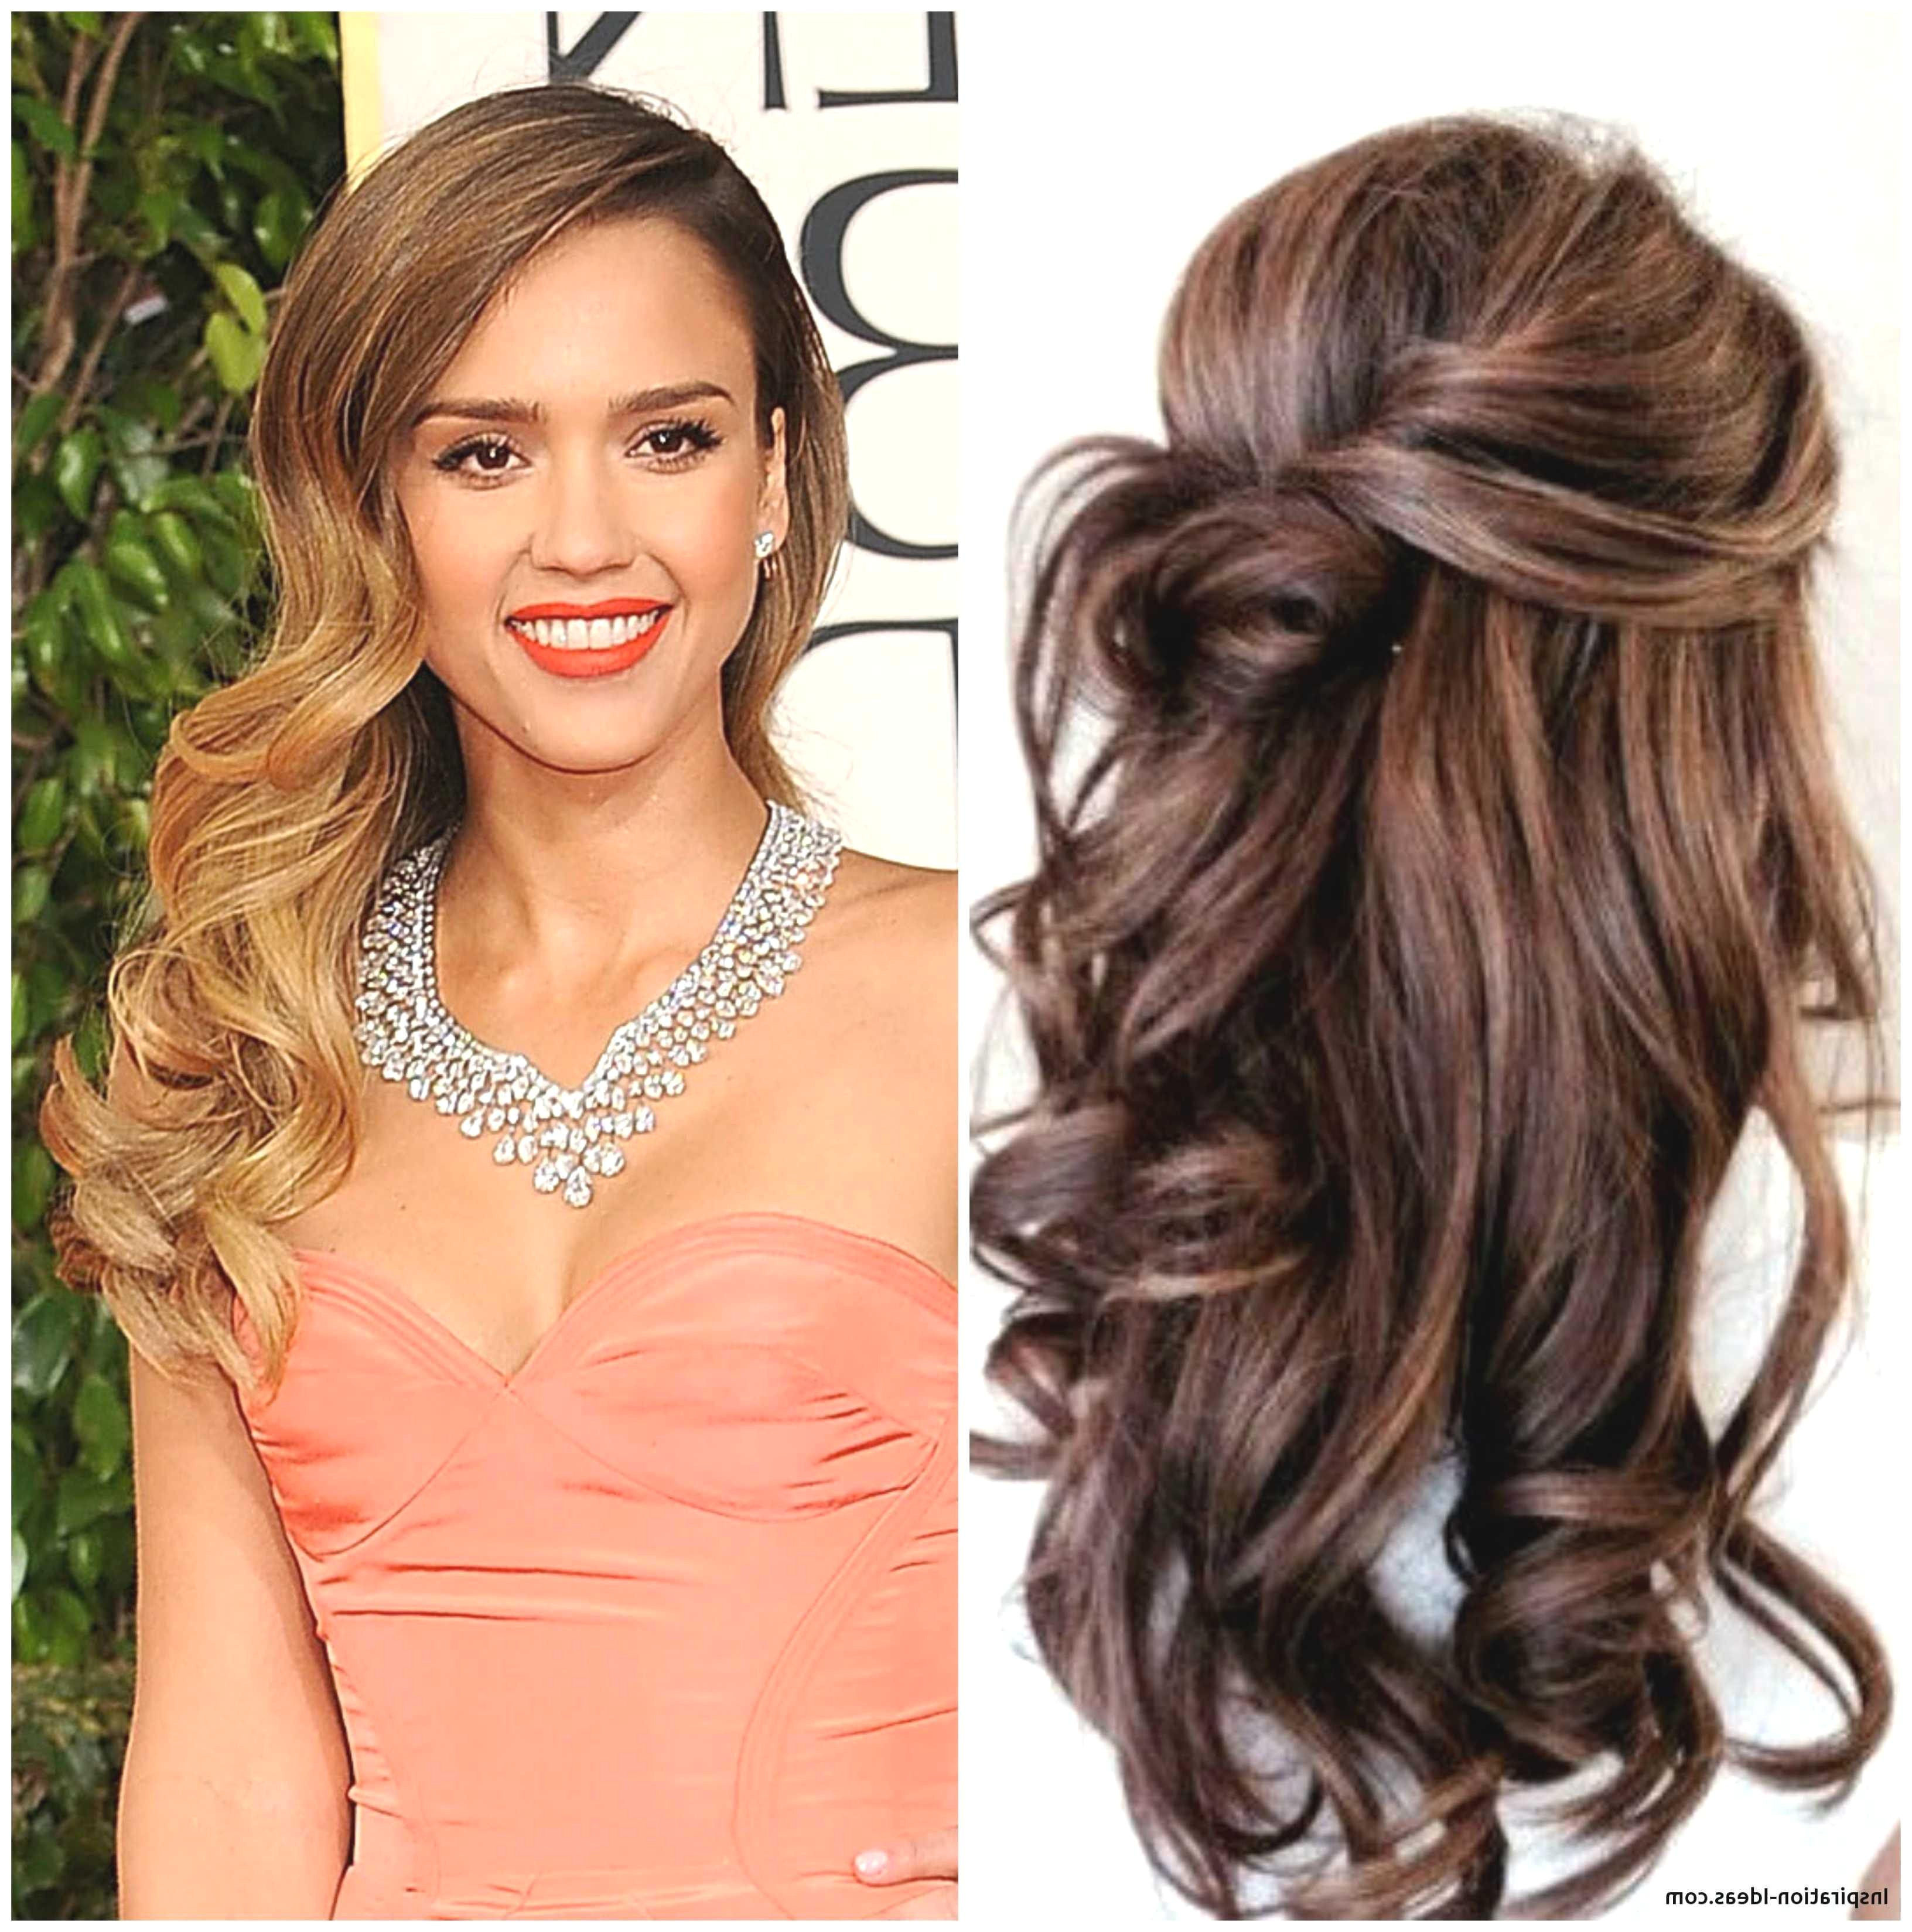 See also to Types Haircuts for Girls Hairstyle Ideas Best Good Hairstyles for Men Luxury Haircuts 0d images below